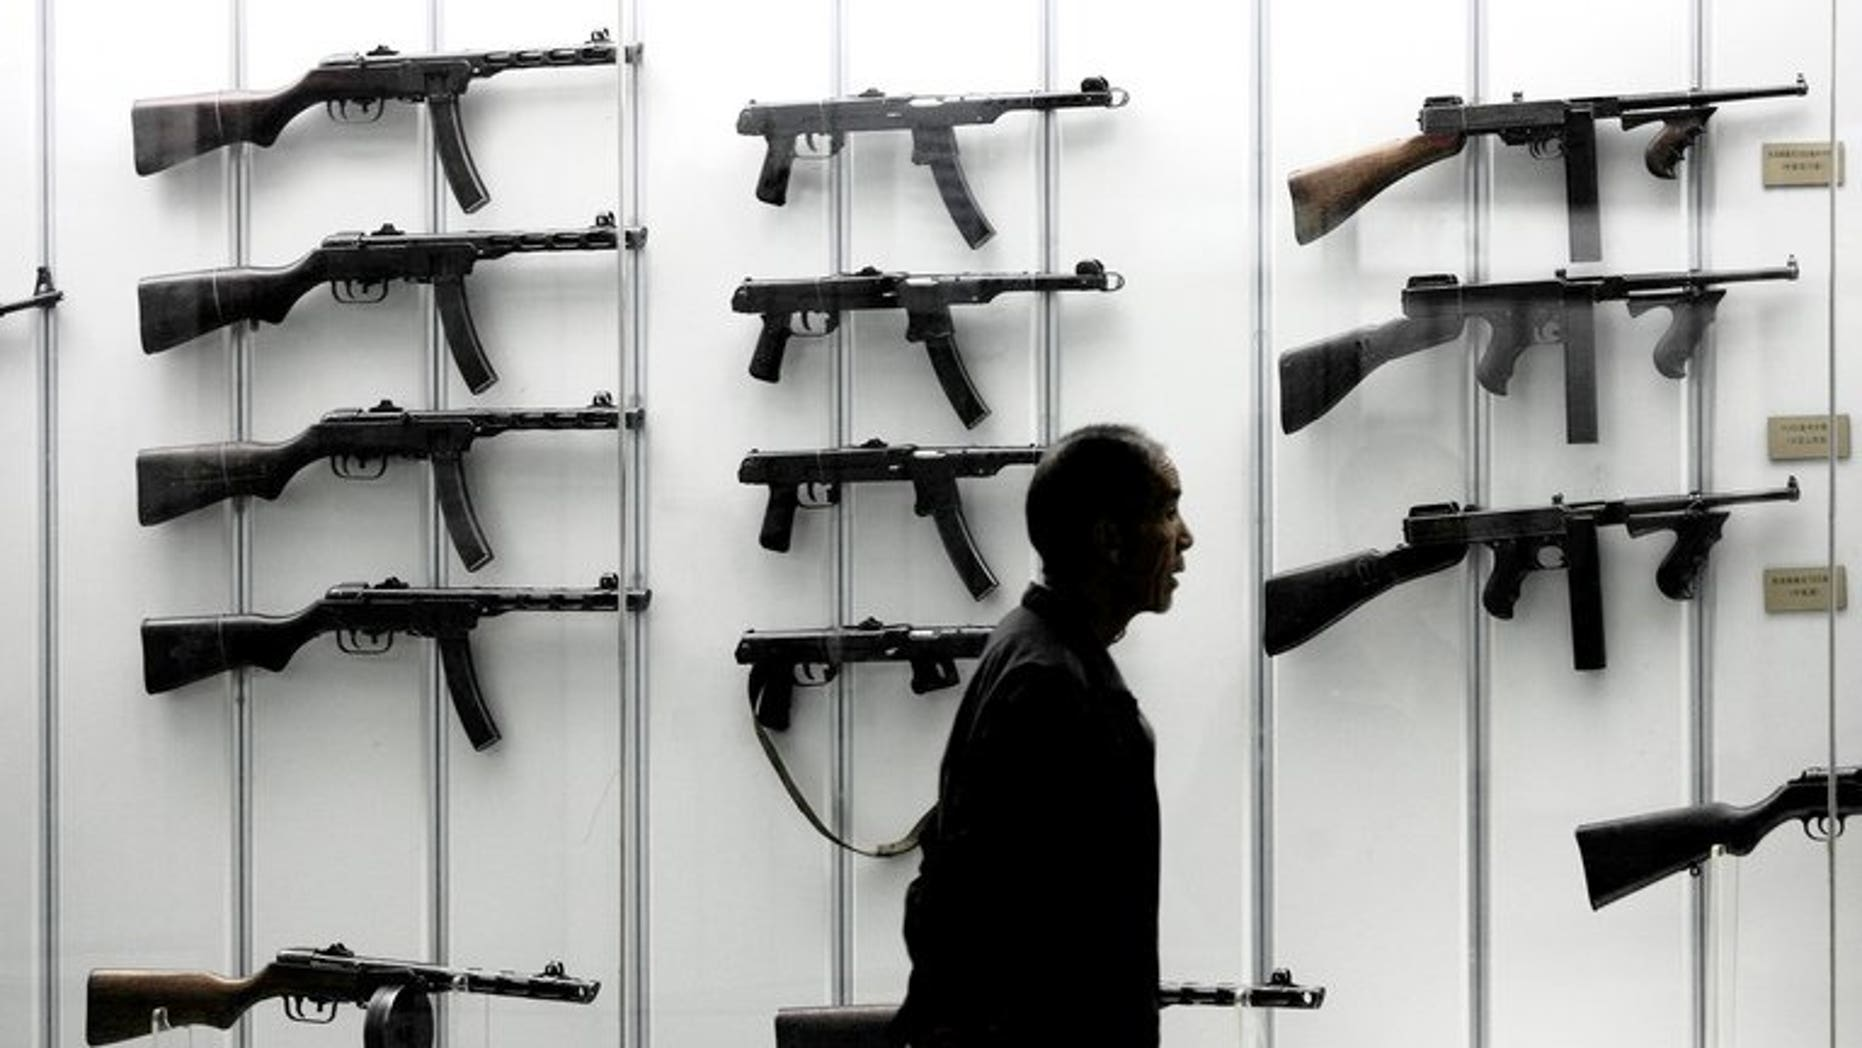 A visitor looks at a display of guns at the military museum in Beijing on June 13, 2006. Defence budgets in the Asia Pacific region will overtake the United States and Canada by 2021, according to a study by respected analysts IHS Jane's published on Tuesday.